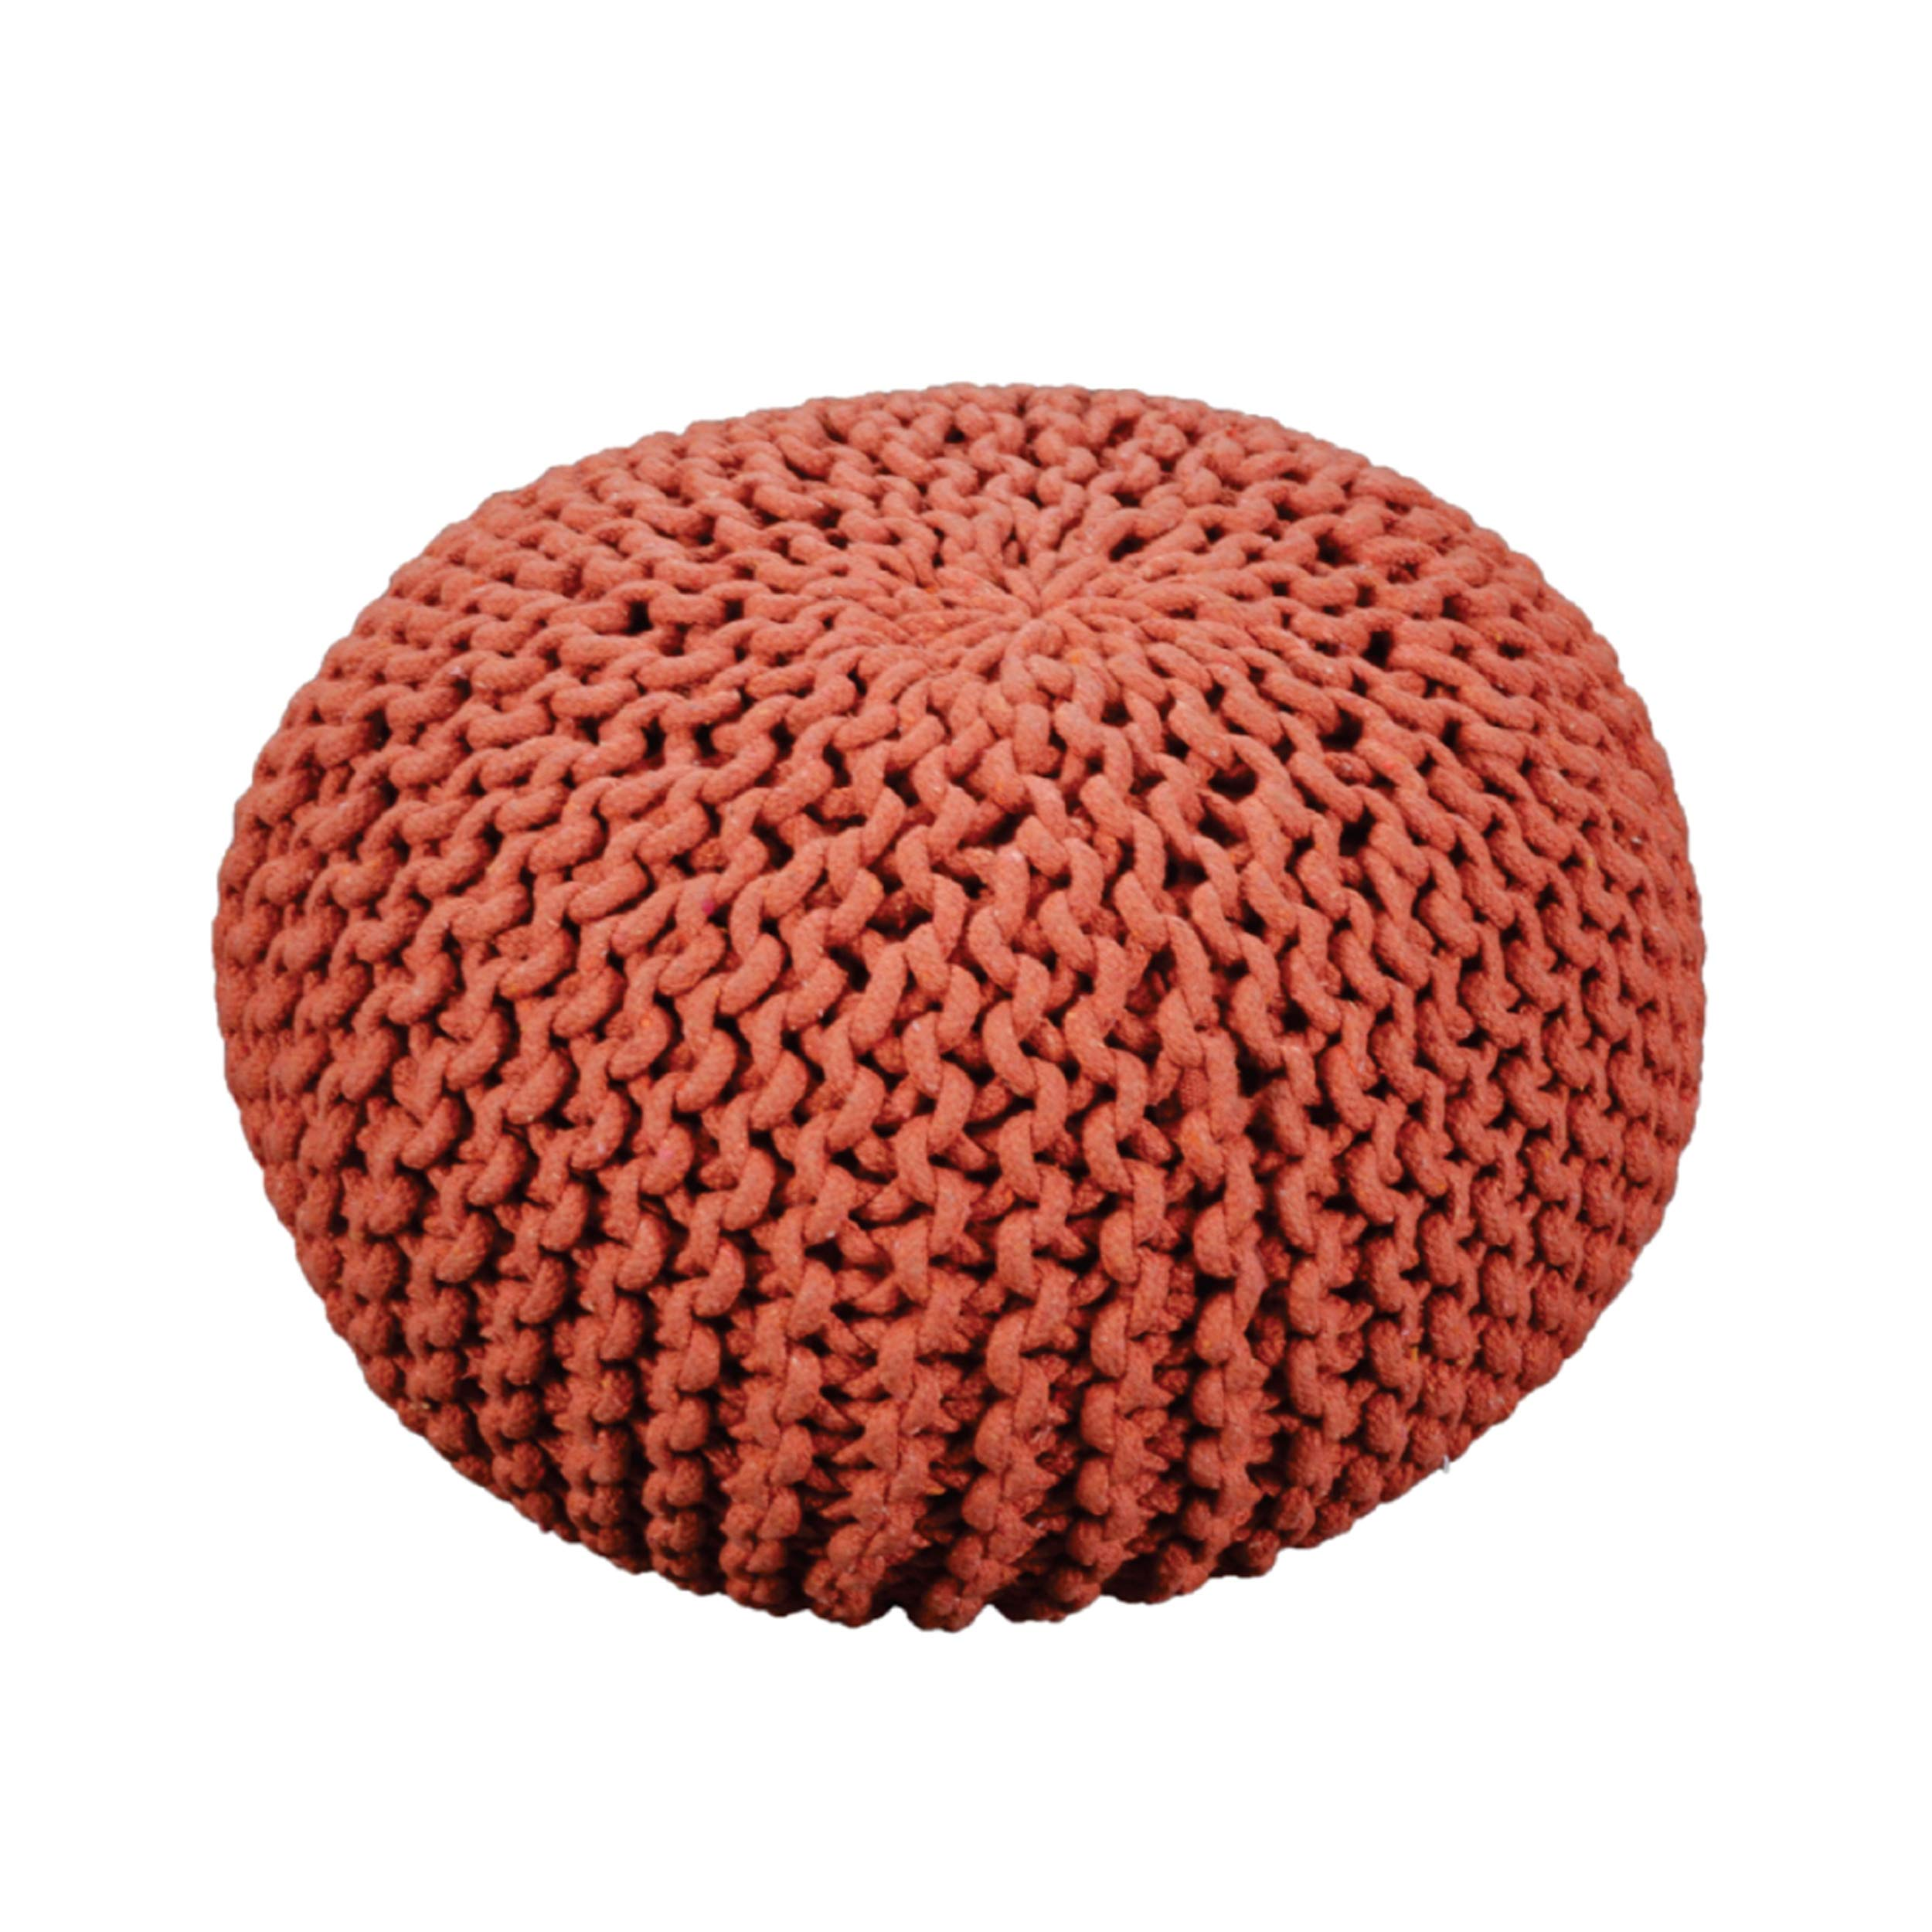 Christopher Knight Home Poona Hand Knitted Artisan Round Pouf (Coral) by Christopher Knight Home